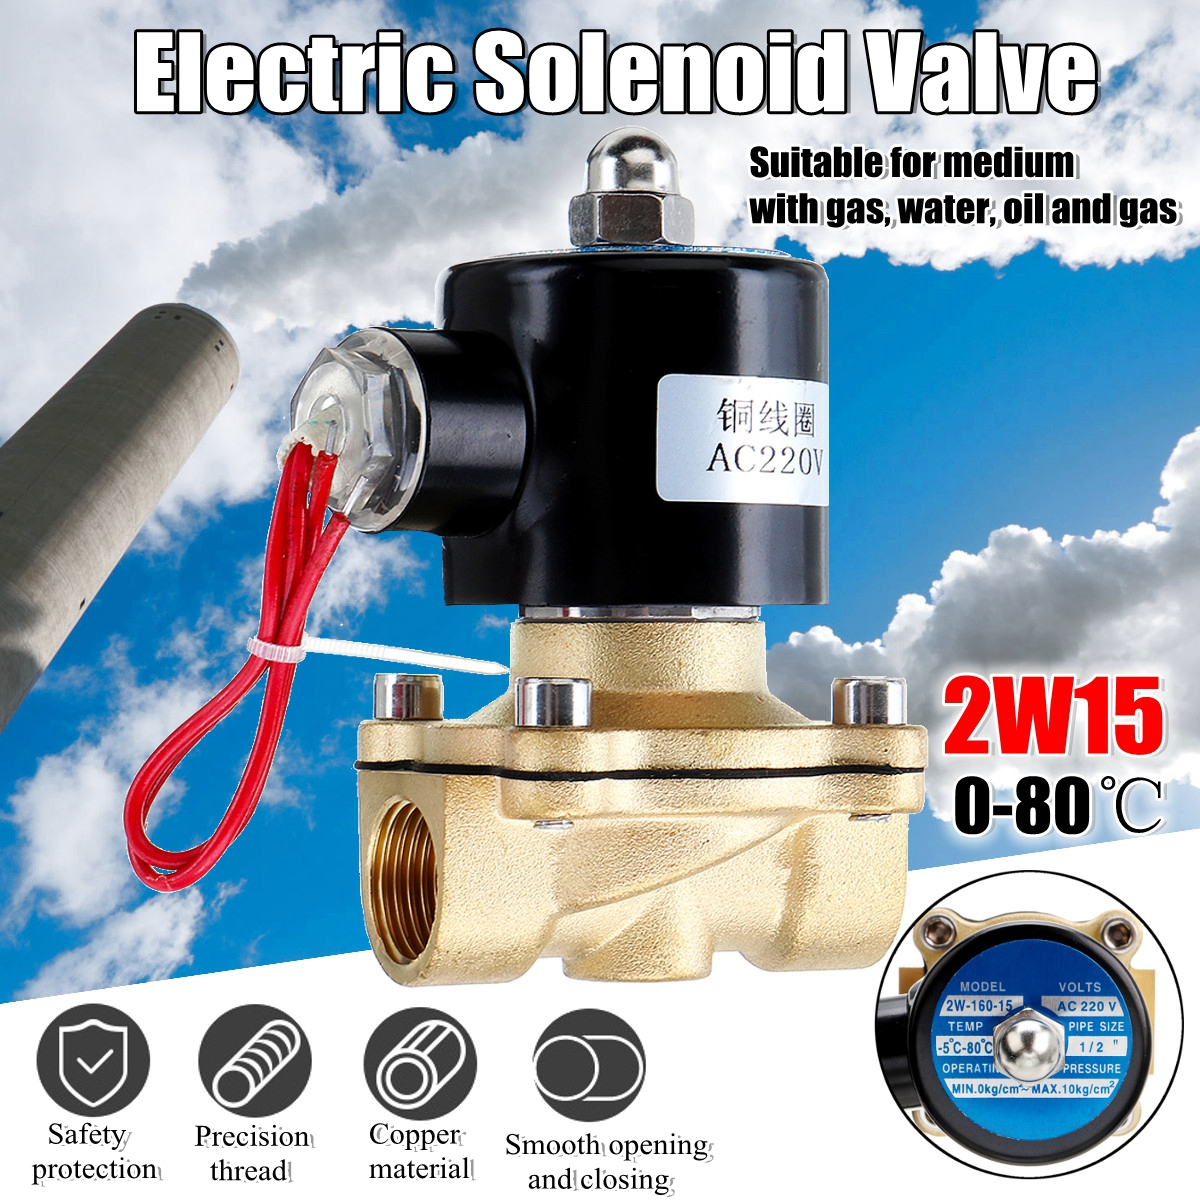 1/2 Inch AC220V Electric Solenoid Valve Normally Open Diaphragm Brass Valve for Water Air Gas brass electric solenoid valve 2w 160 15 1 2 inch npt for air water valve 12v nc